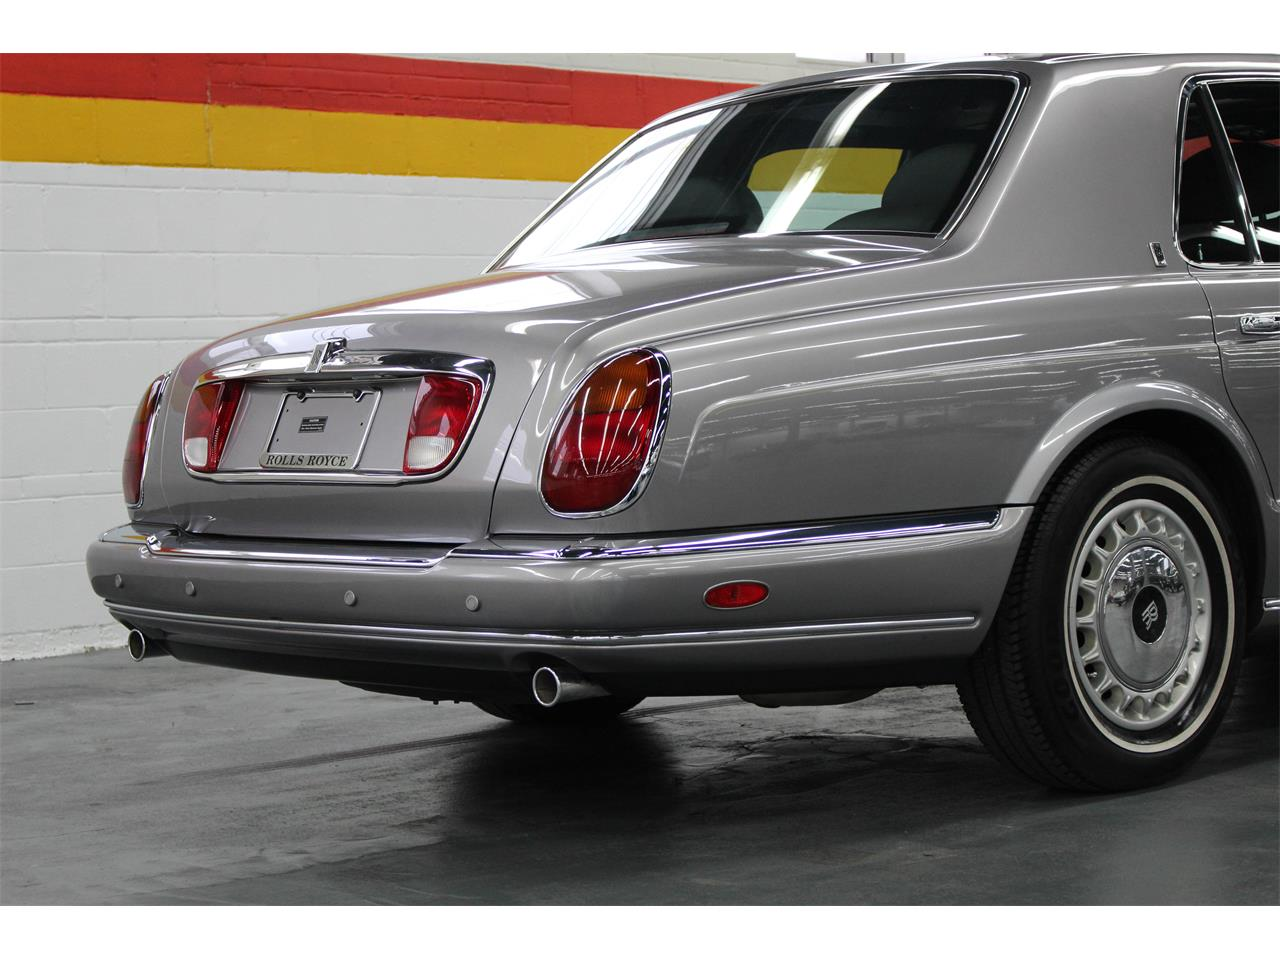 Large Picture of 1999 Rolls-Royce Silver Seraph located in Quebec - $59,995.00 - M1YP